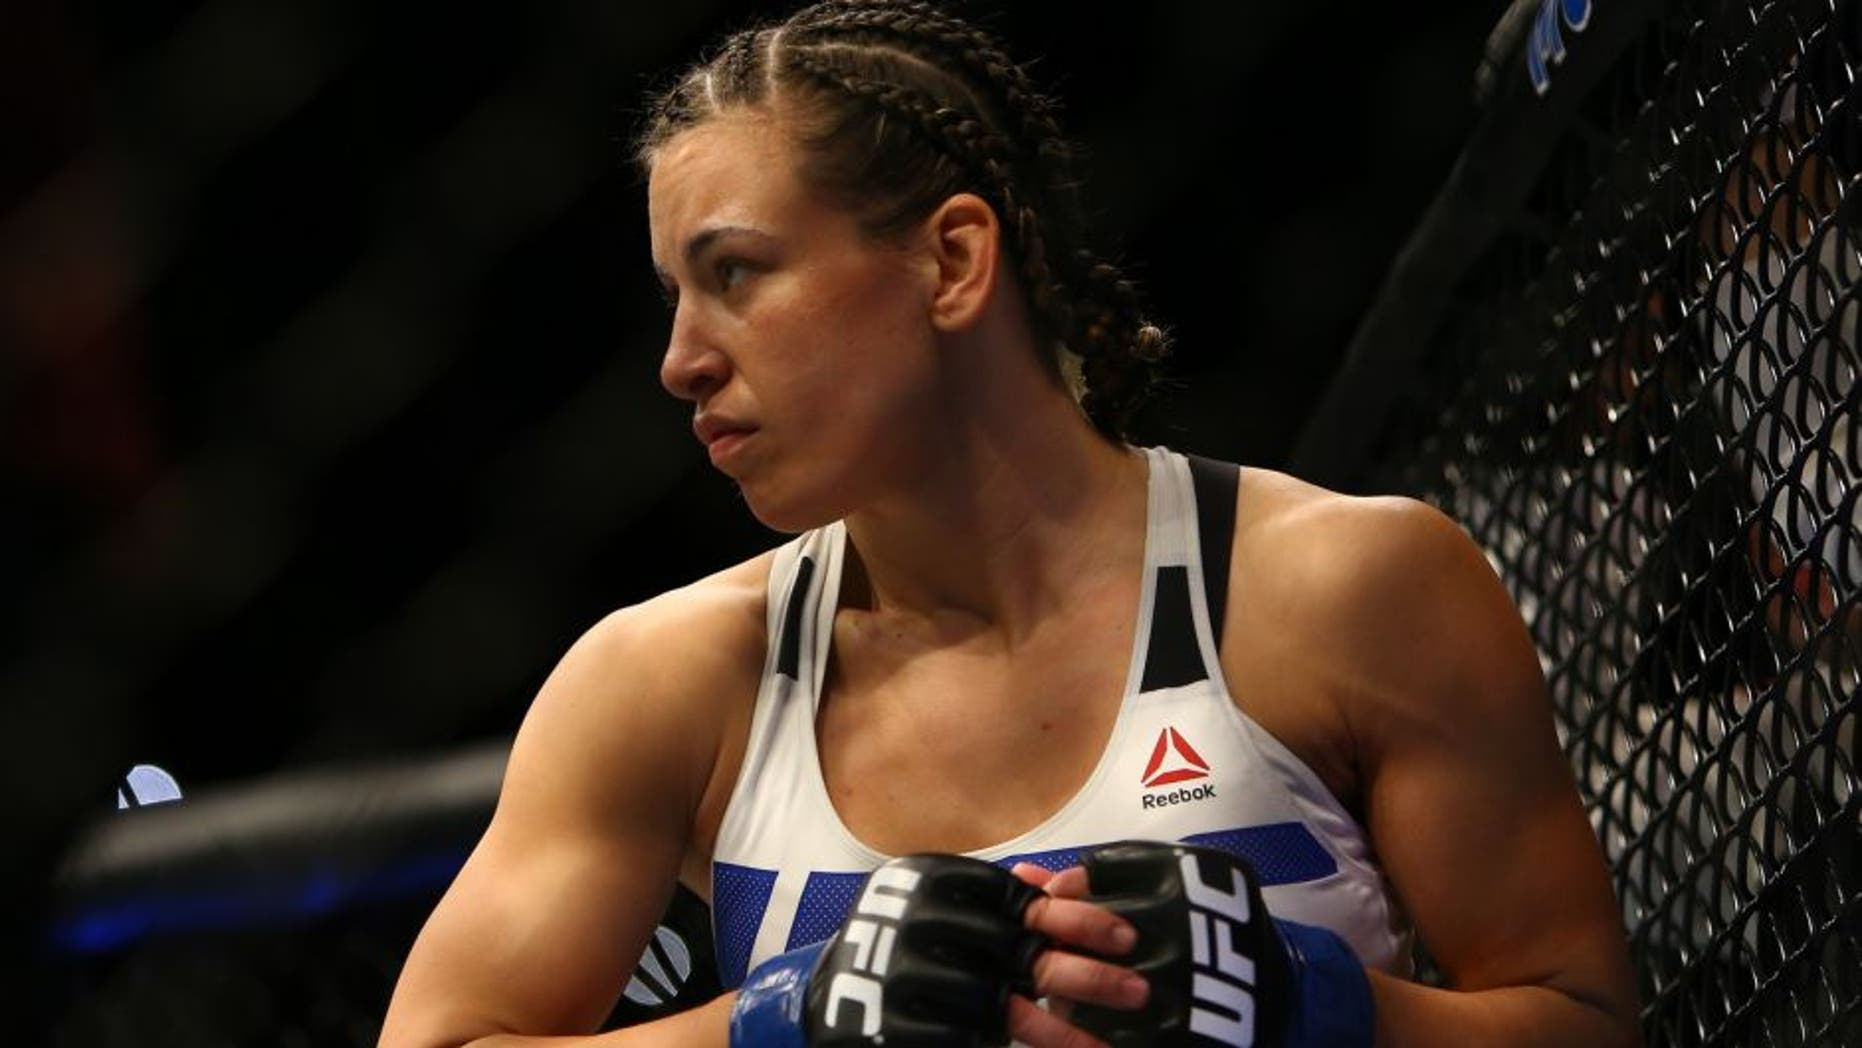 LAS VEGAS, NV - MARCH 5: Miesha Tate prior to her bout against UFC bantamweight champion Holly Holm during UFC 196 at the MGM Grand Garden Arena on March 5, 2016 in Las Vegas, Nevada. (Photo by Rey Del Rio/Getty Images)